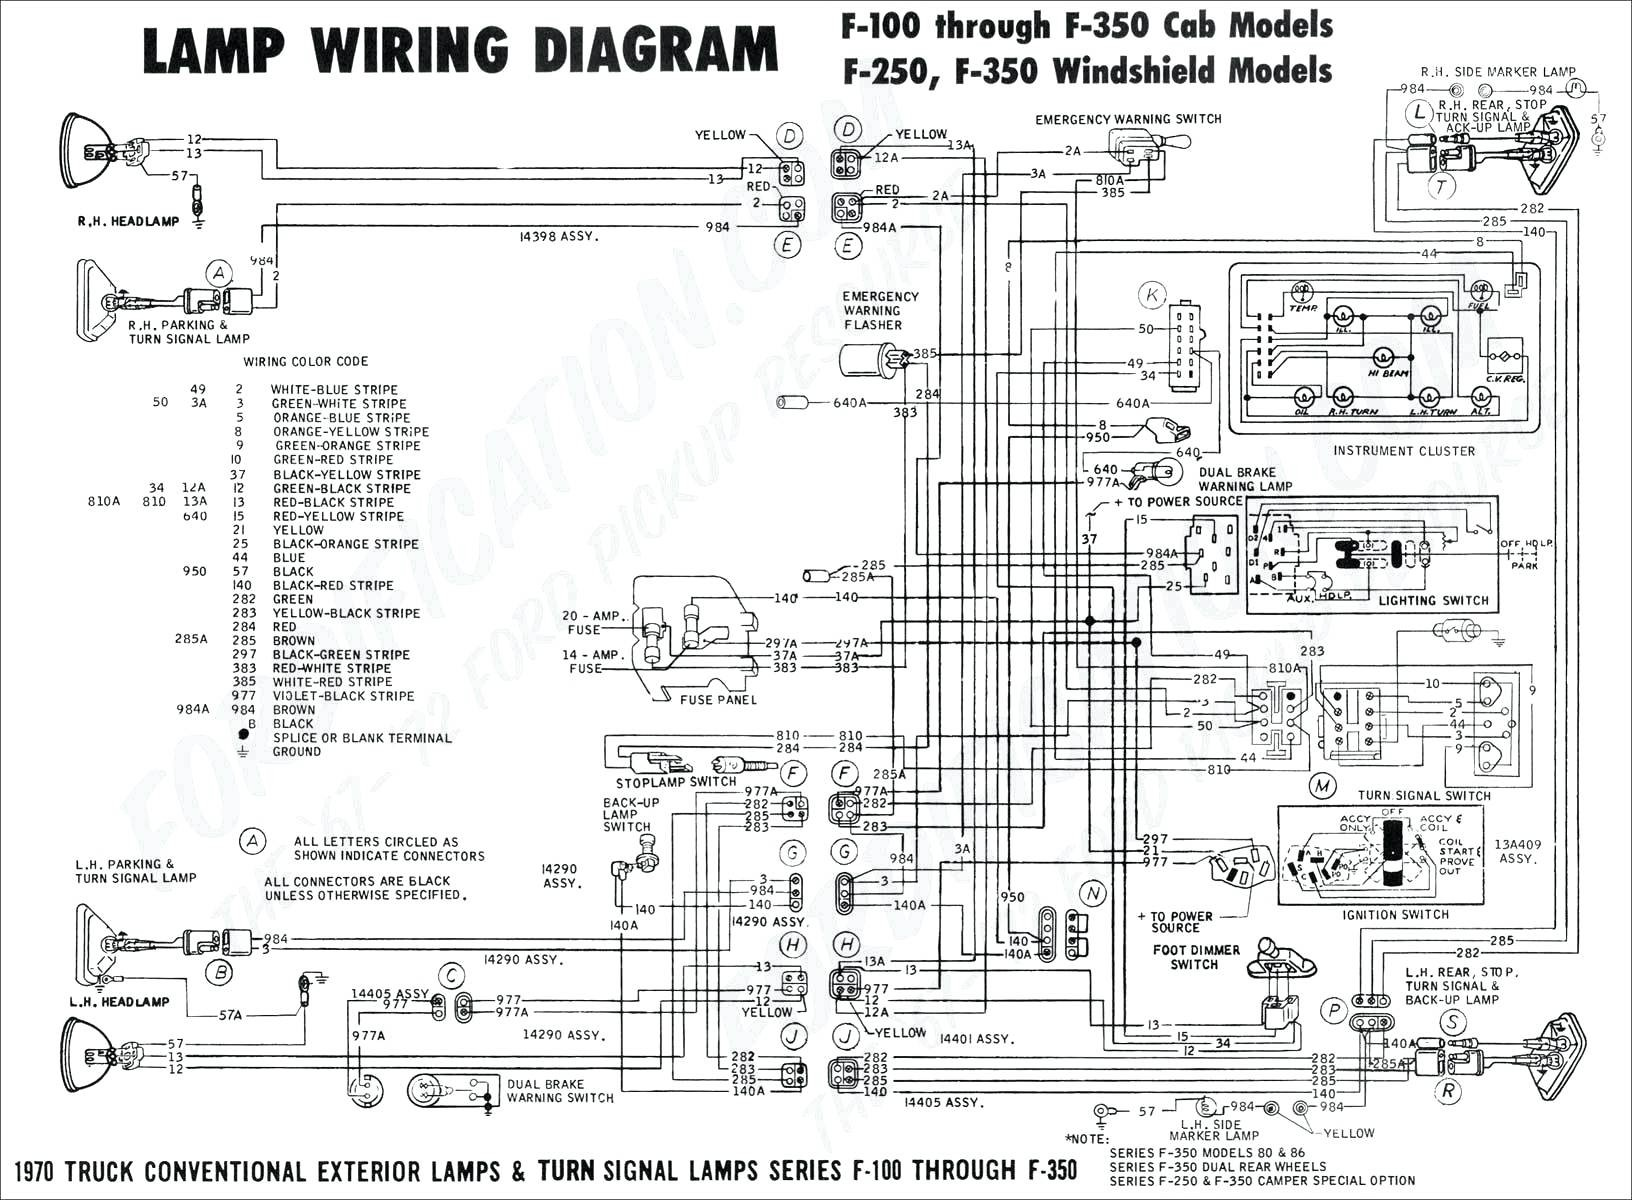 Ford New Holland Wiring Diagram Furthermore 1964 ford Truck Wiring Old  Fashioned 1939 ford 9n